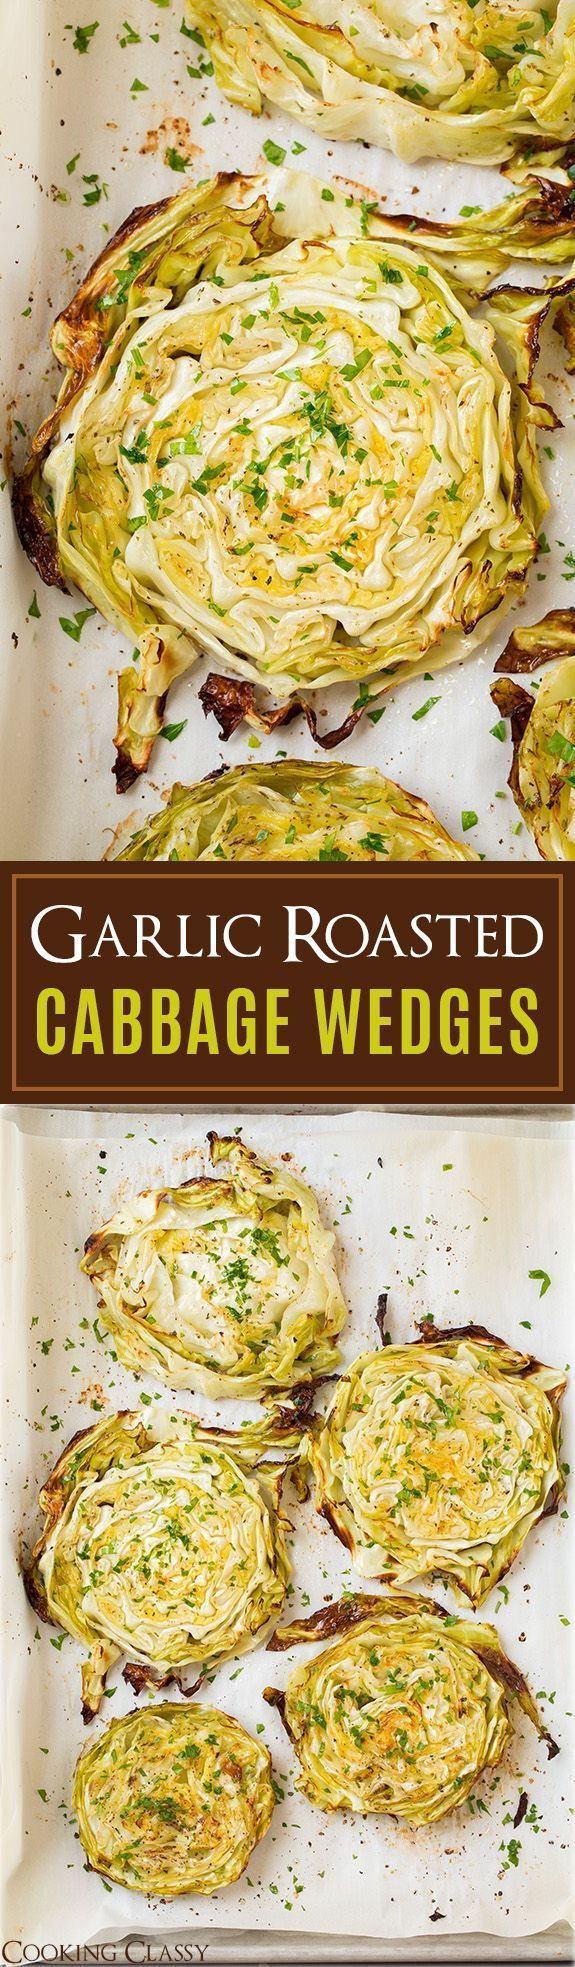 Garlic Roasted Cabba Garlic Roasted Cabbage Wedges - So easy and delicious! https://www.pinterest.com/pin/414612709436517272/